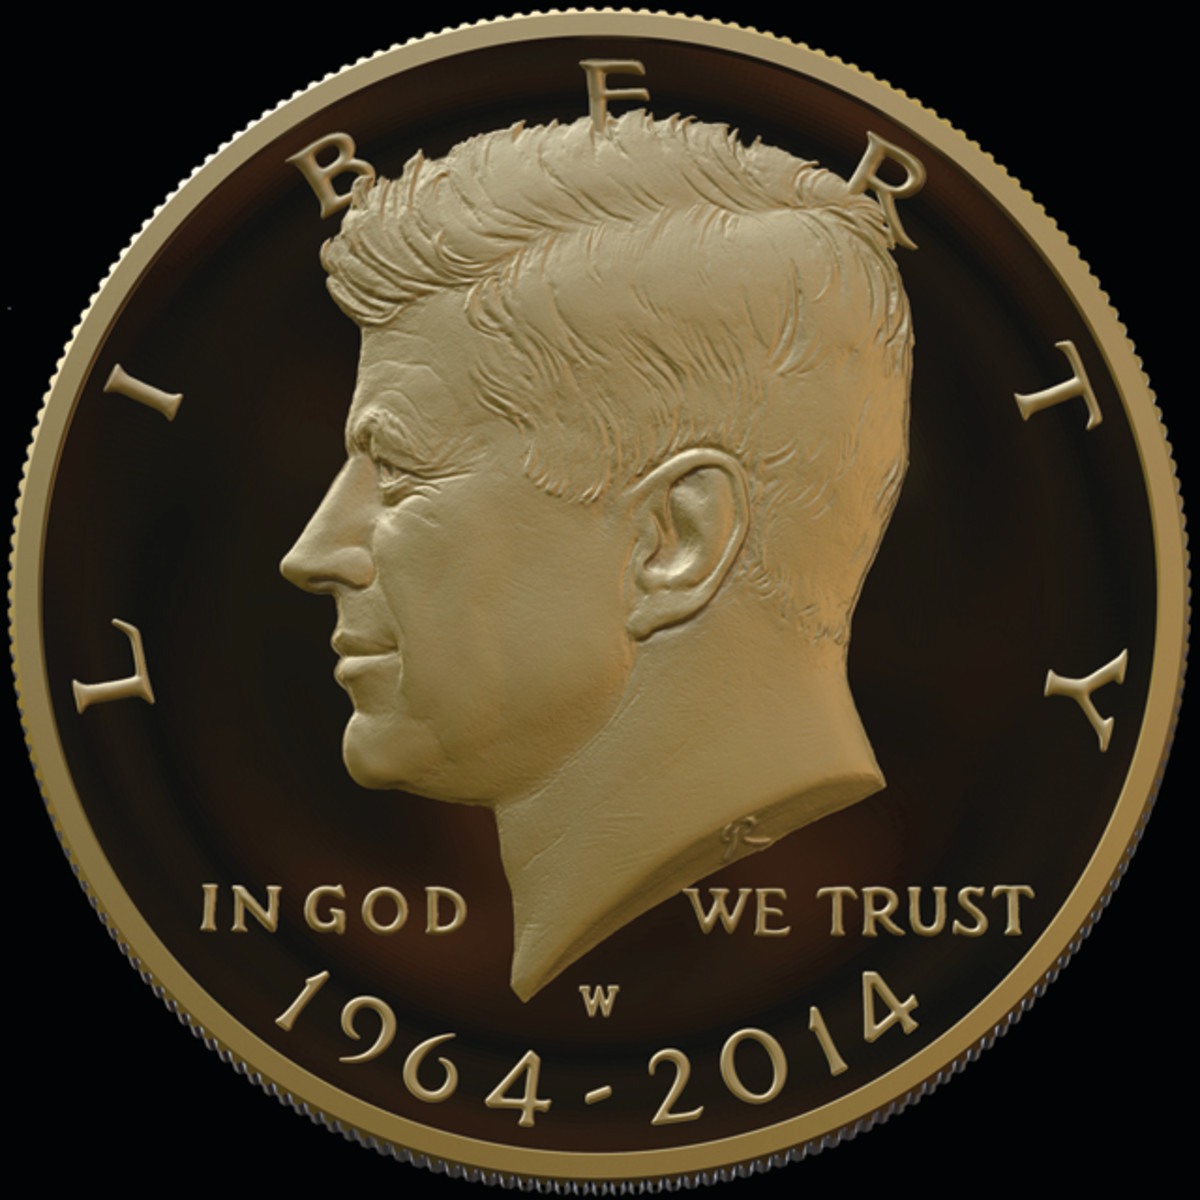 Obverse of the dual-dated (1964-2014) gold 2014 Kennedy half dollar